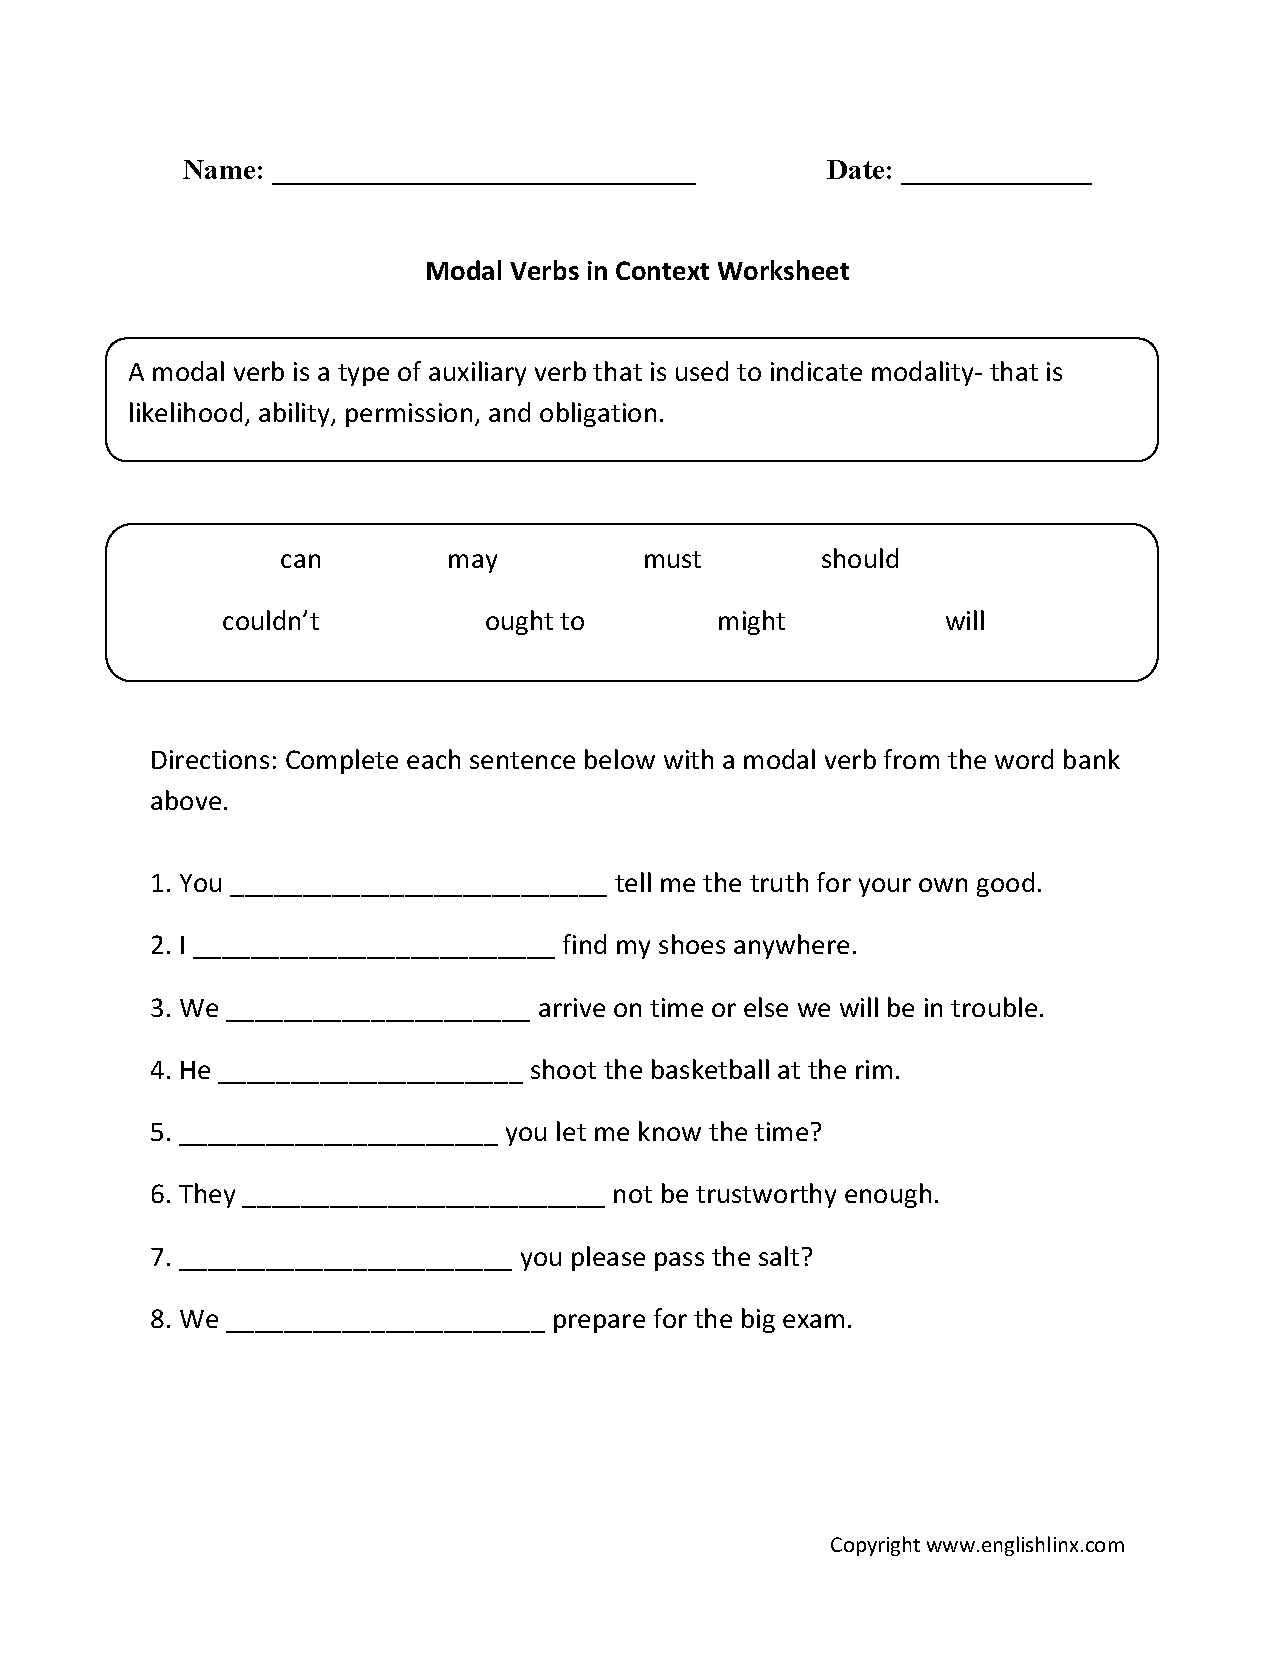 Worksheets Dot Plot Worksheets englishlinx com verbs worksheets modal worksheets